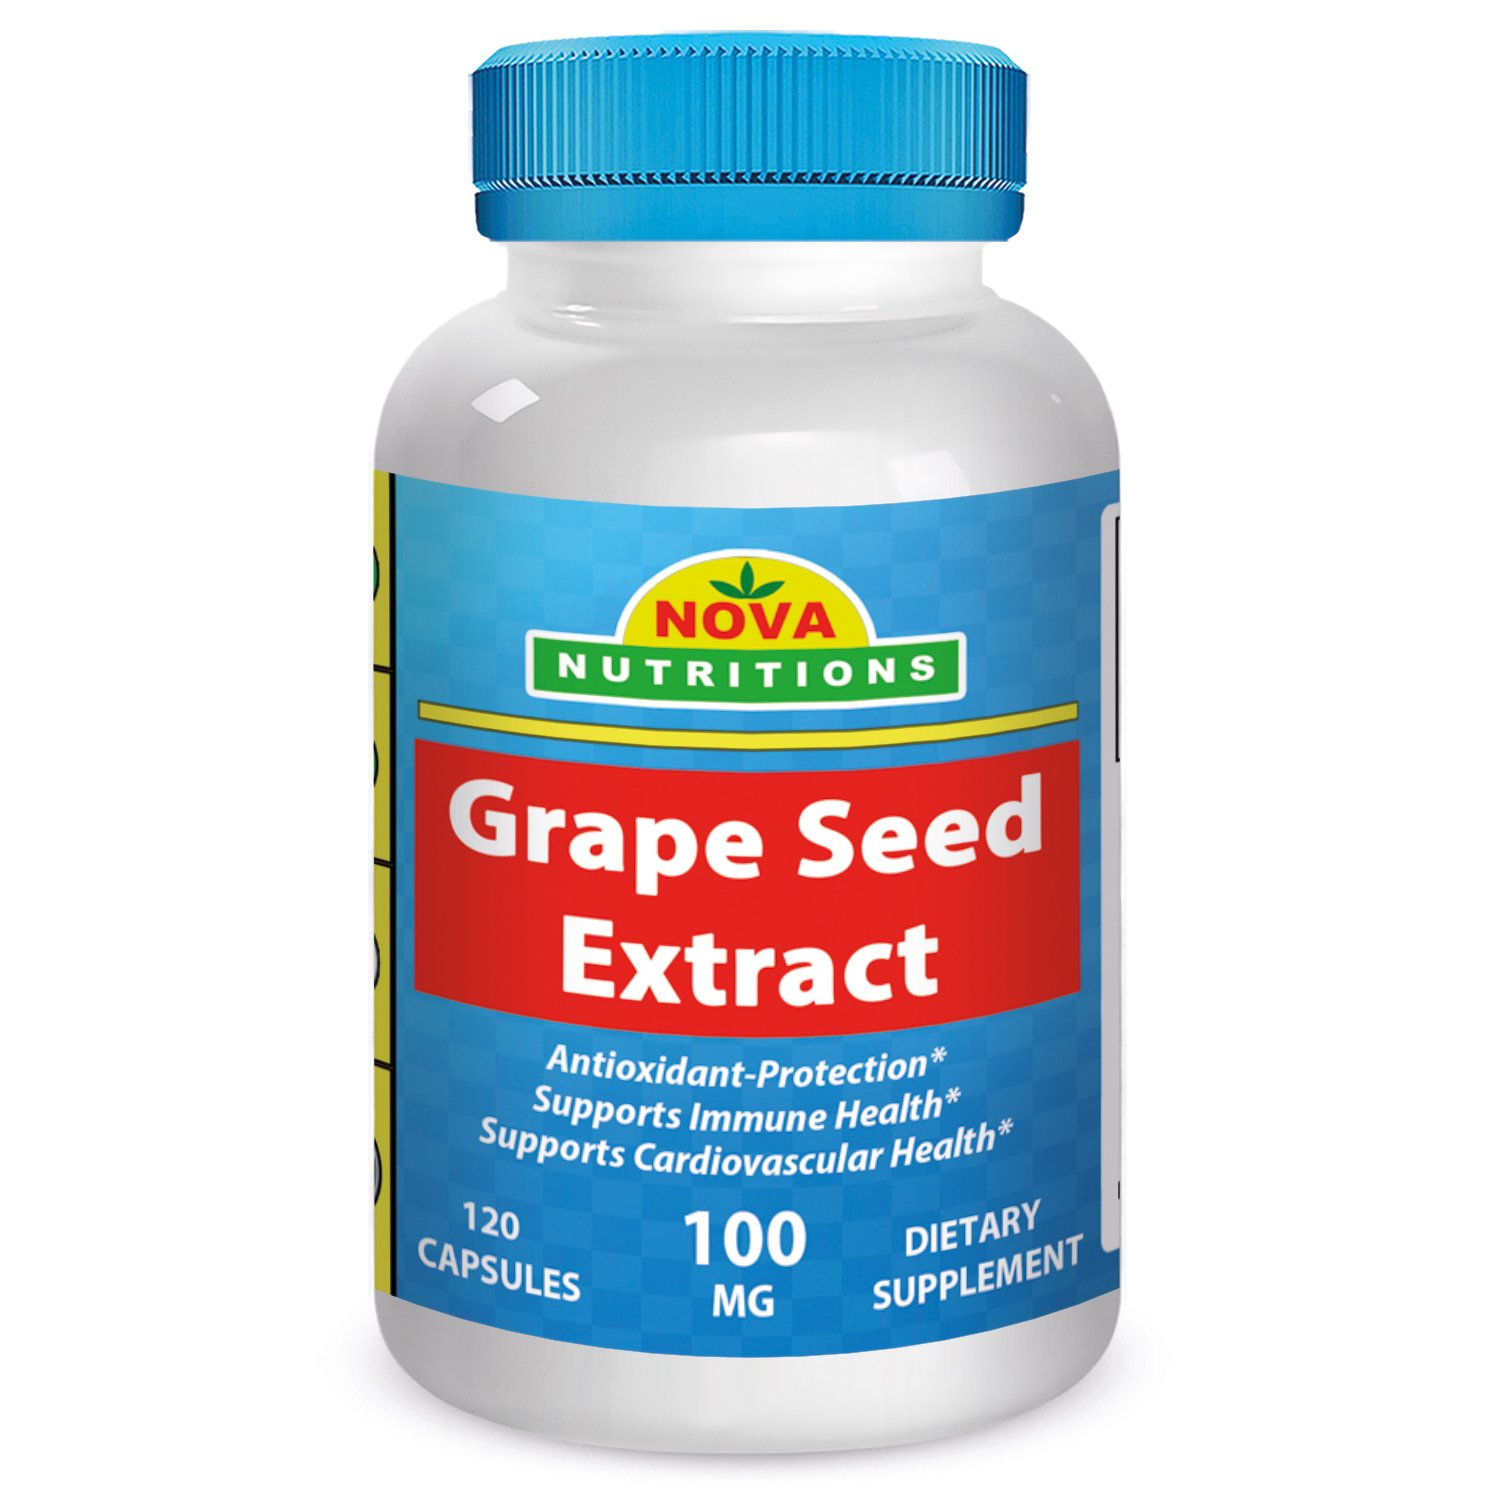 Grape Seed Extract 100 Mg 120 Capsules By Nova Nutritions 6